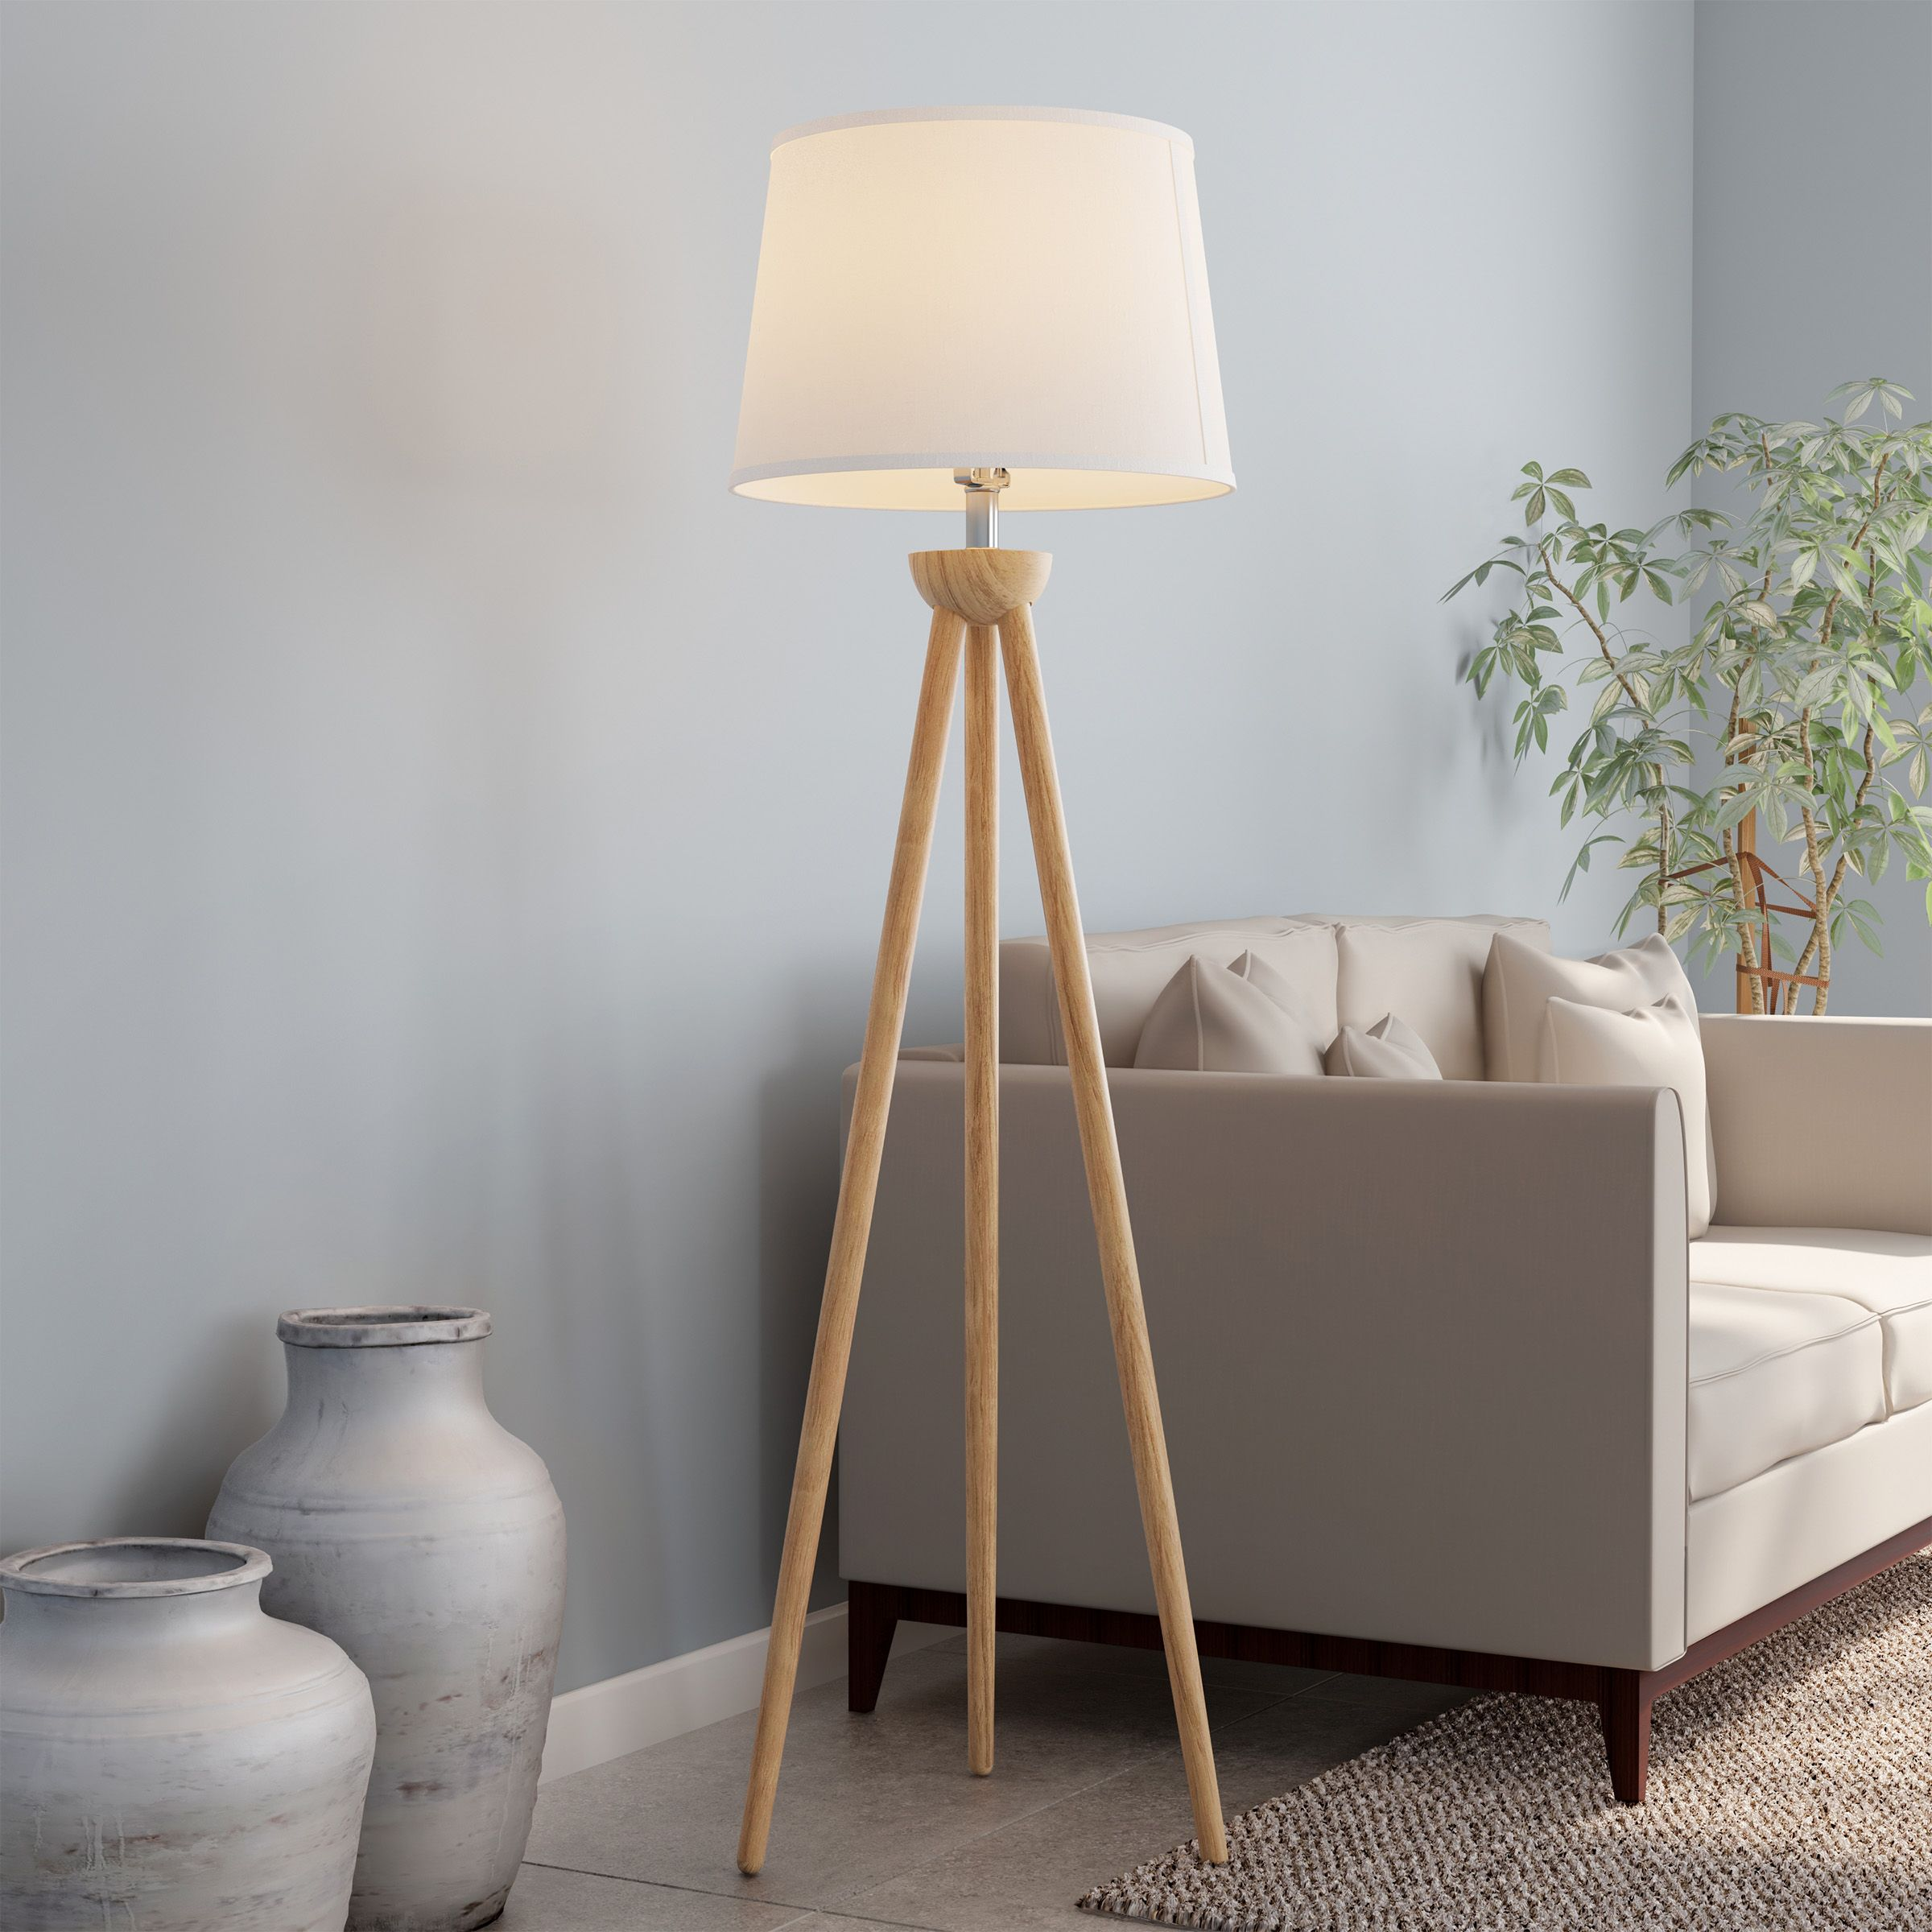 Tripod Modern Floor Lamp Led Bulb Natural Oak Wood With White Shade By Lavish Home Walmart Com In 2020 Floor Lamps Living Room Modern Floor Lamps Tripod Floor Lamps